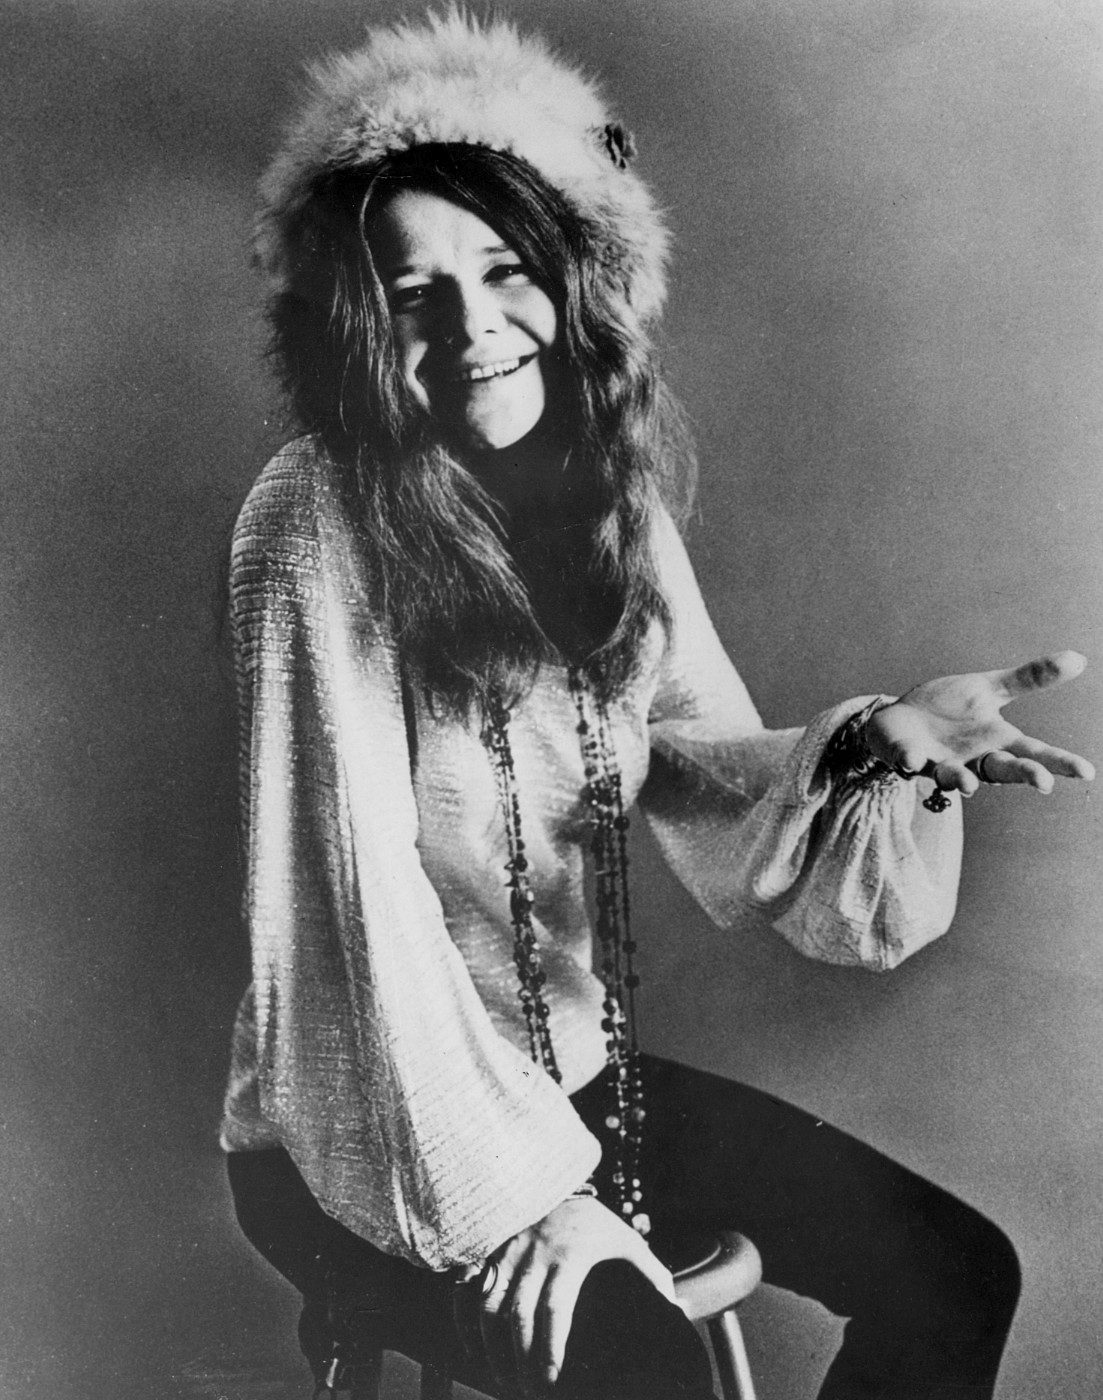 janis joplin — when do you become an elder?